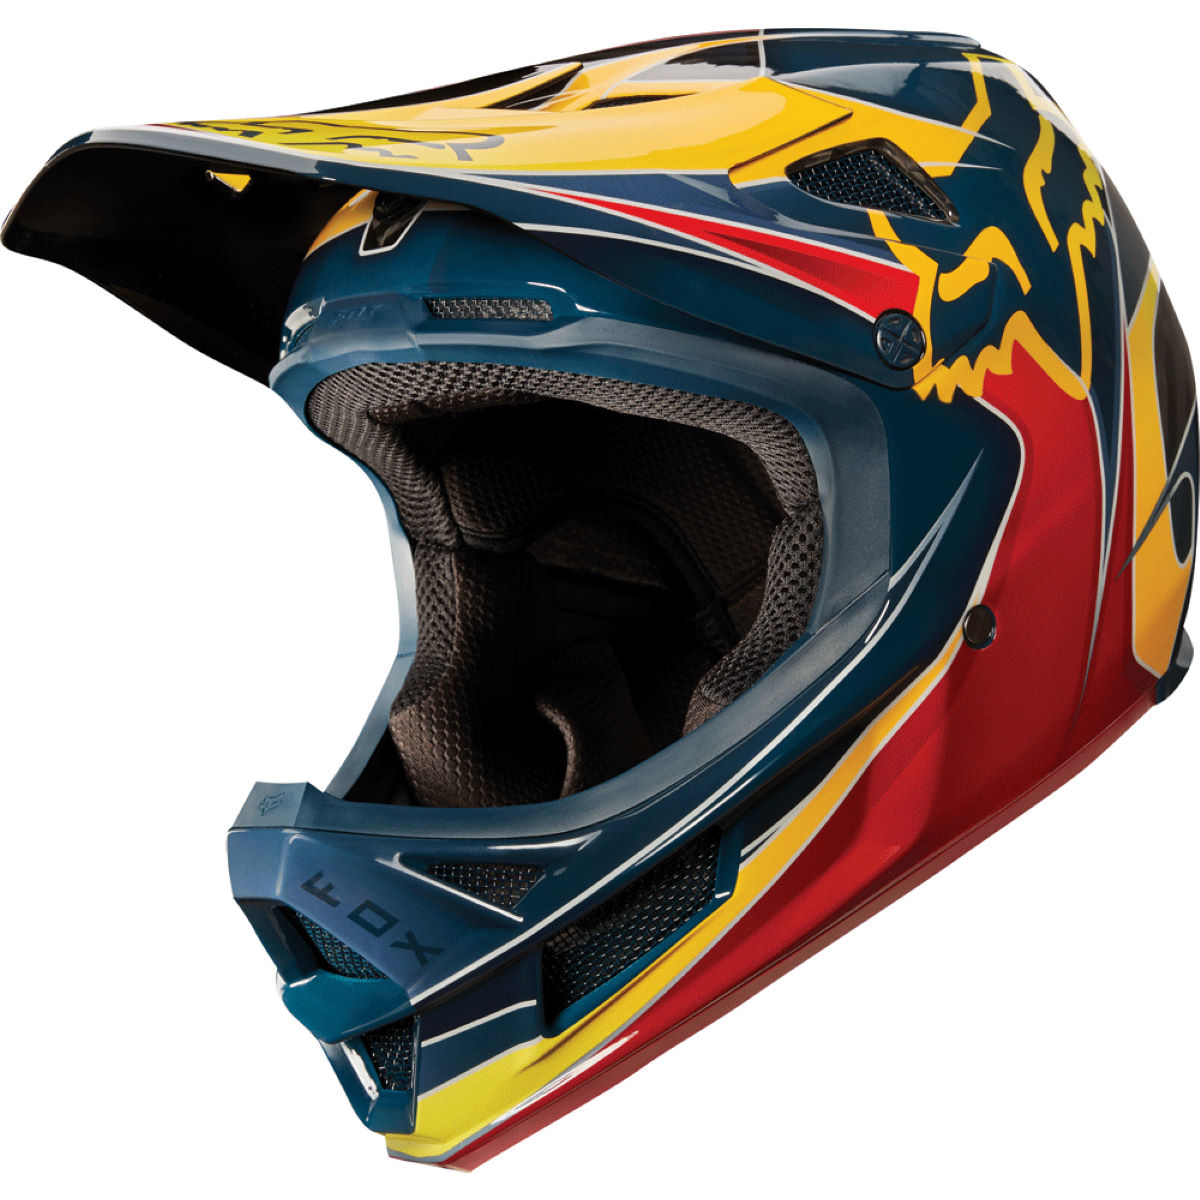 Casque Fox Racing Rampage Pro Carbon Kustom - L Red/Yellow Casques